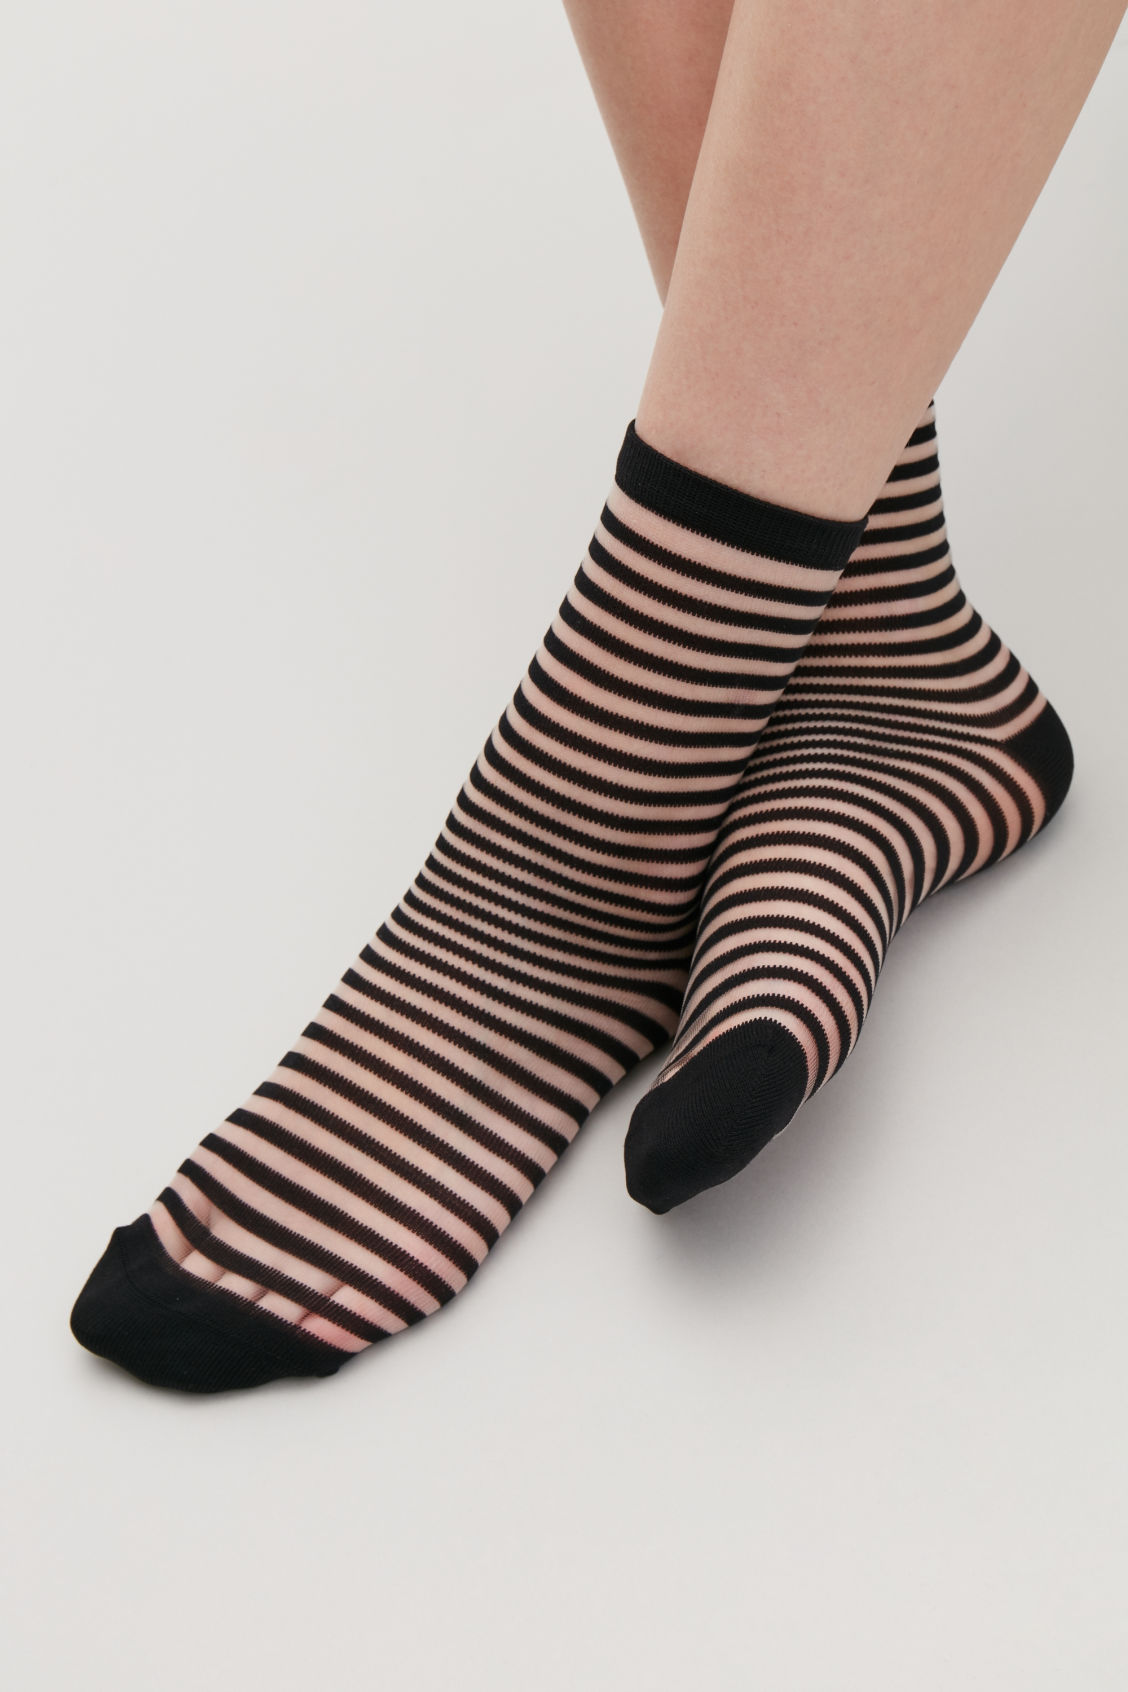 Detailed image of Cos striped sheer socks in black